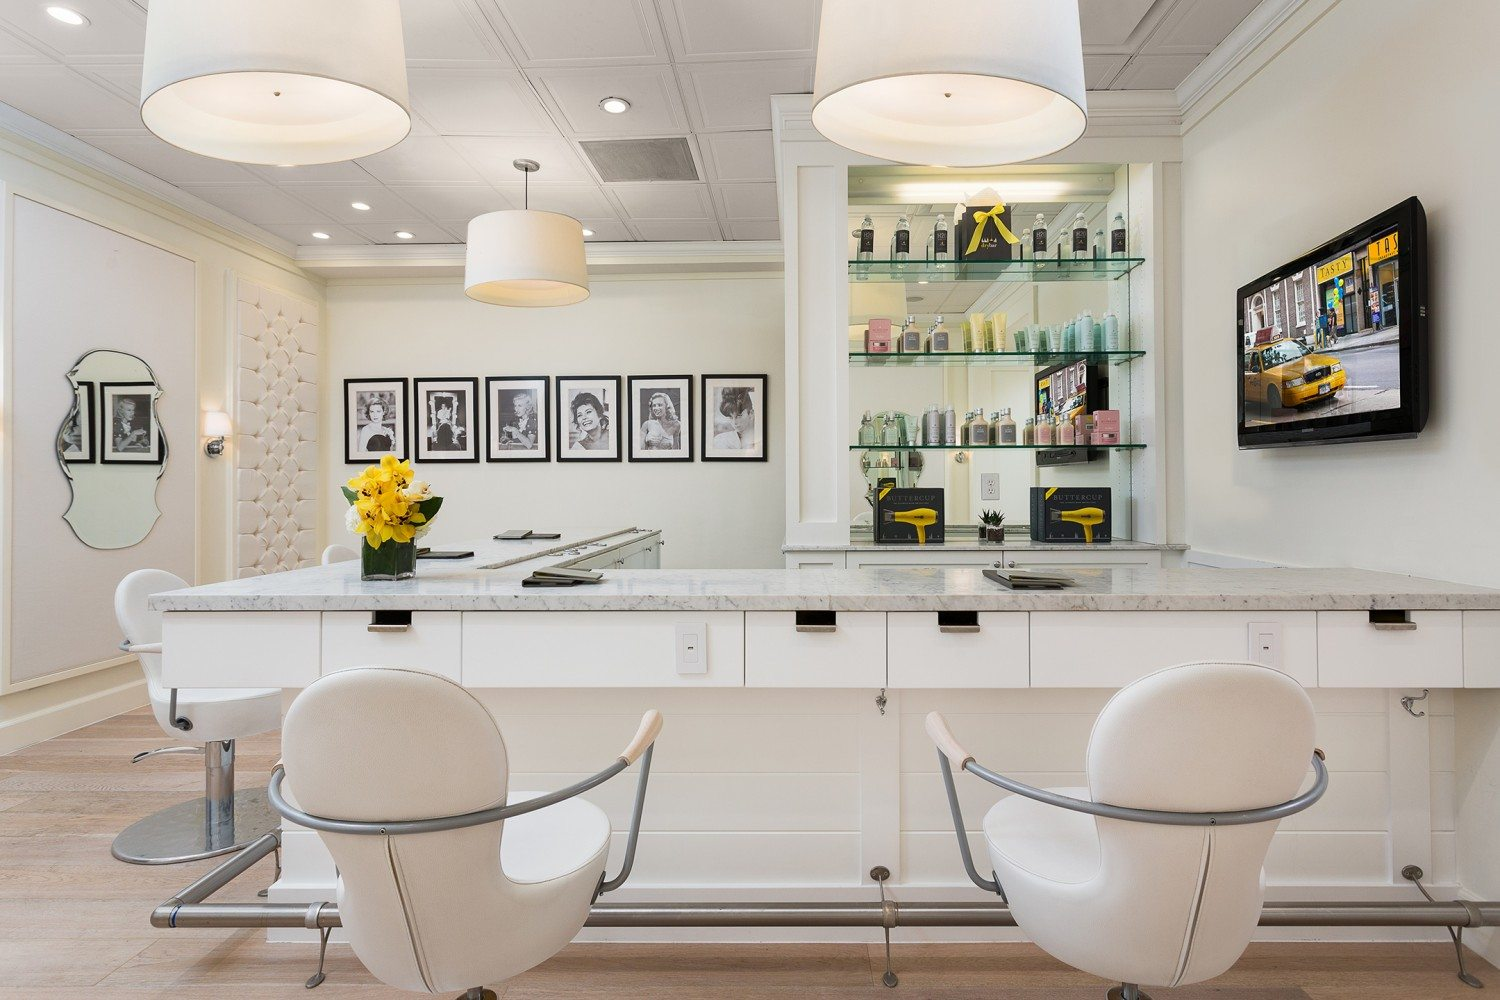 Drybar To Open Its First Private Location